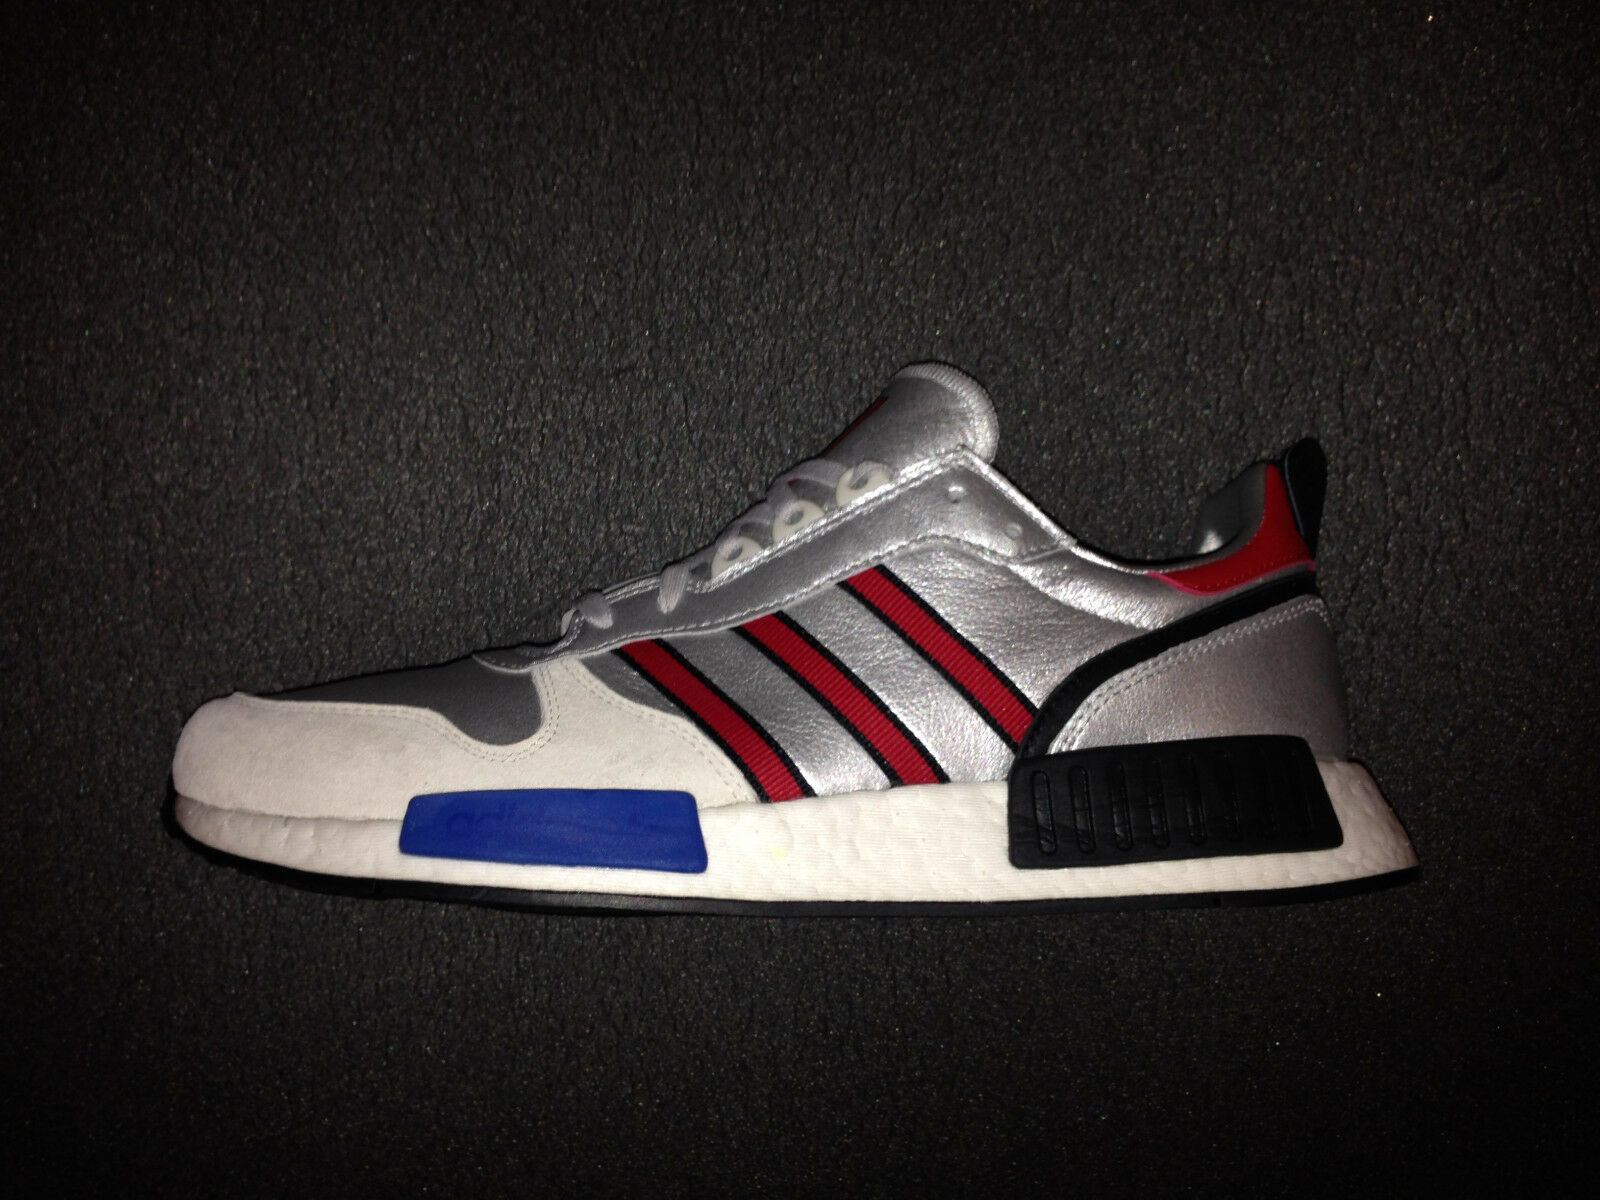 Adidas Rising Star x R1 2018 vintage colourway US 11,5 UK 11 FR 46